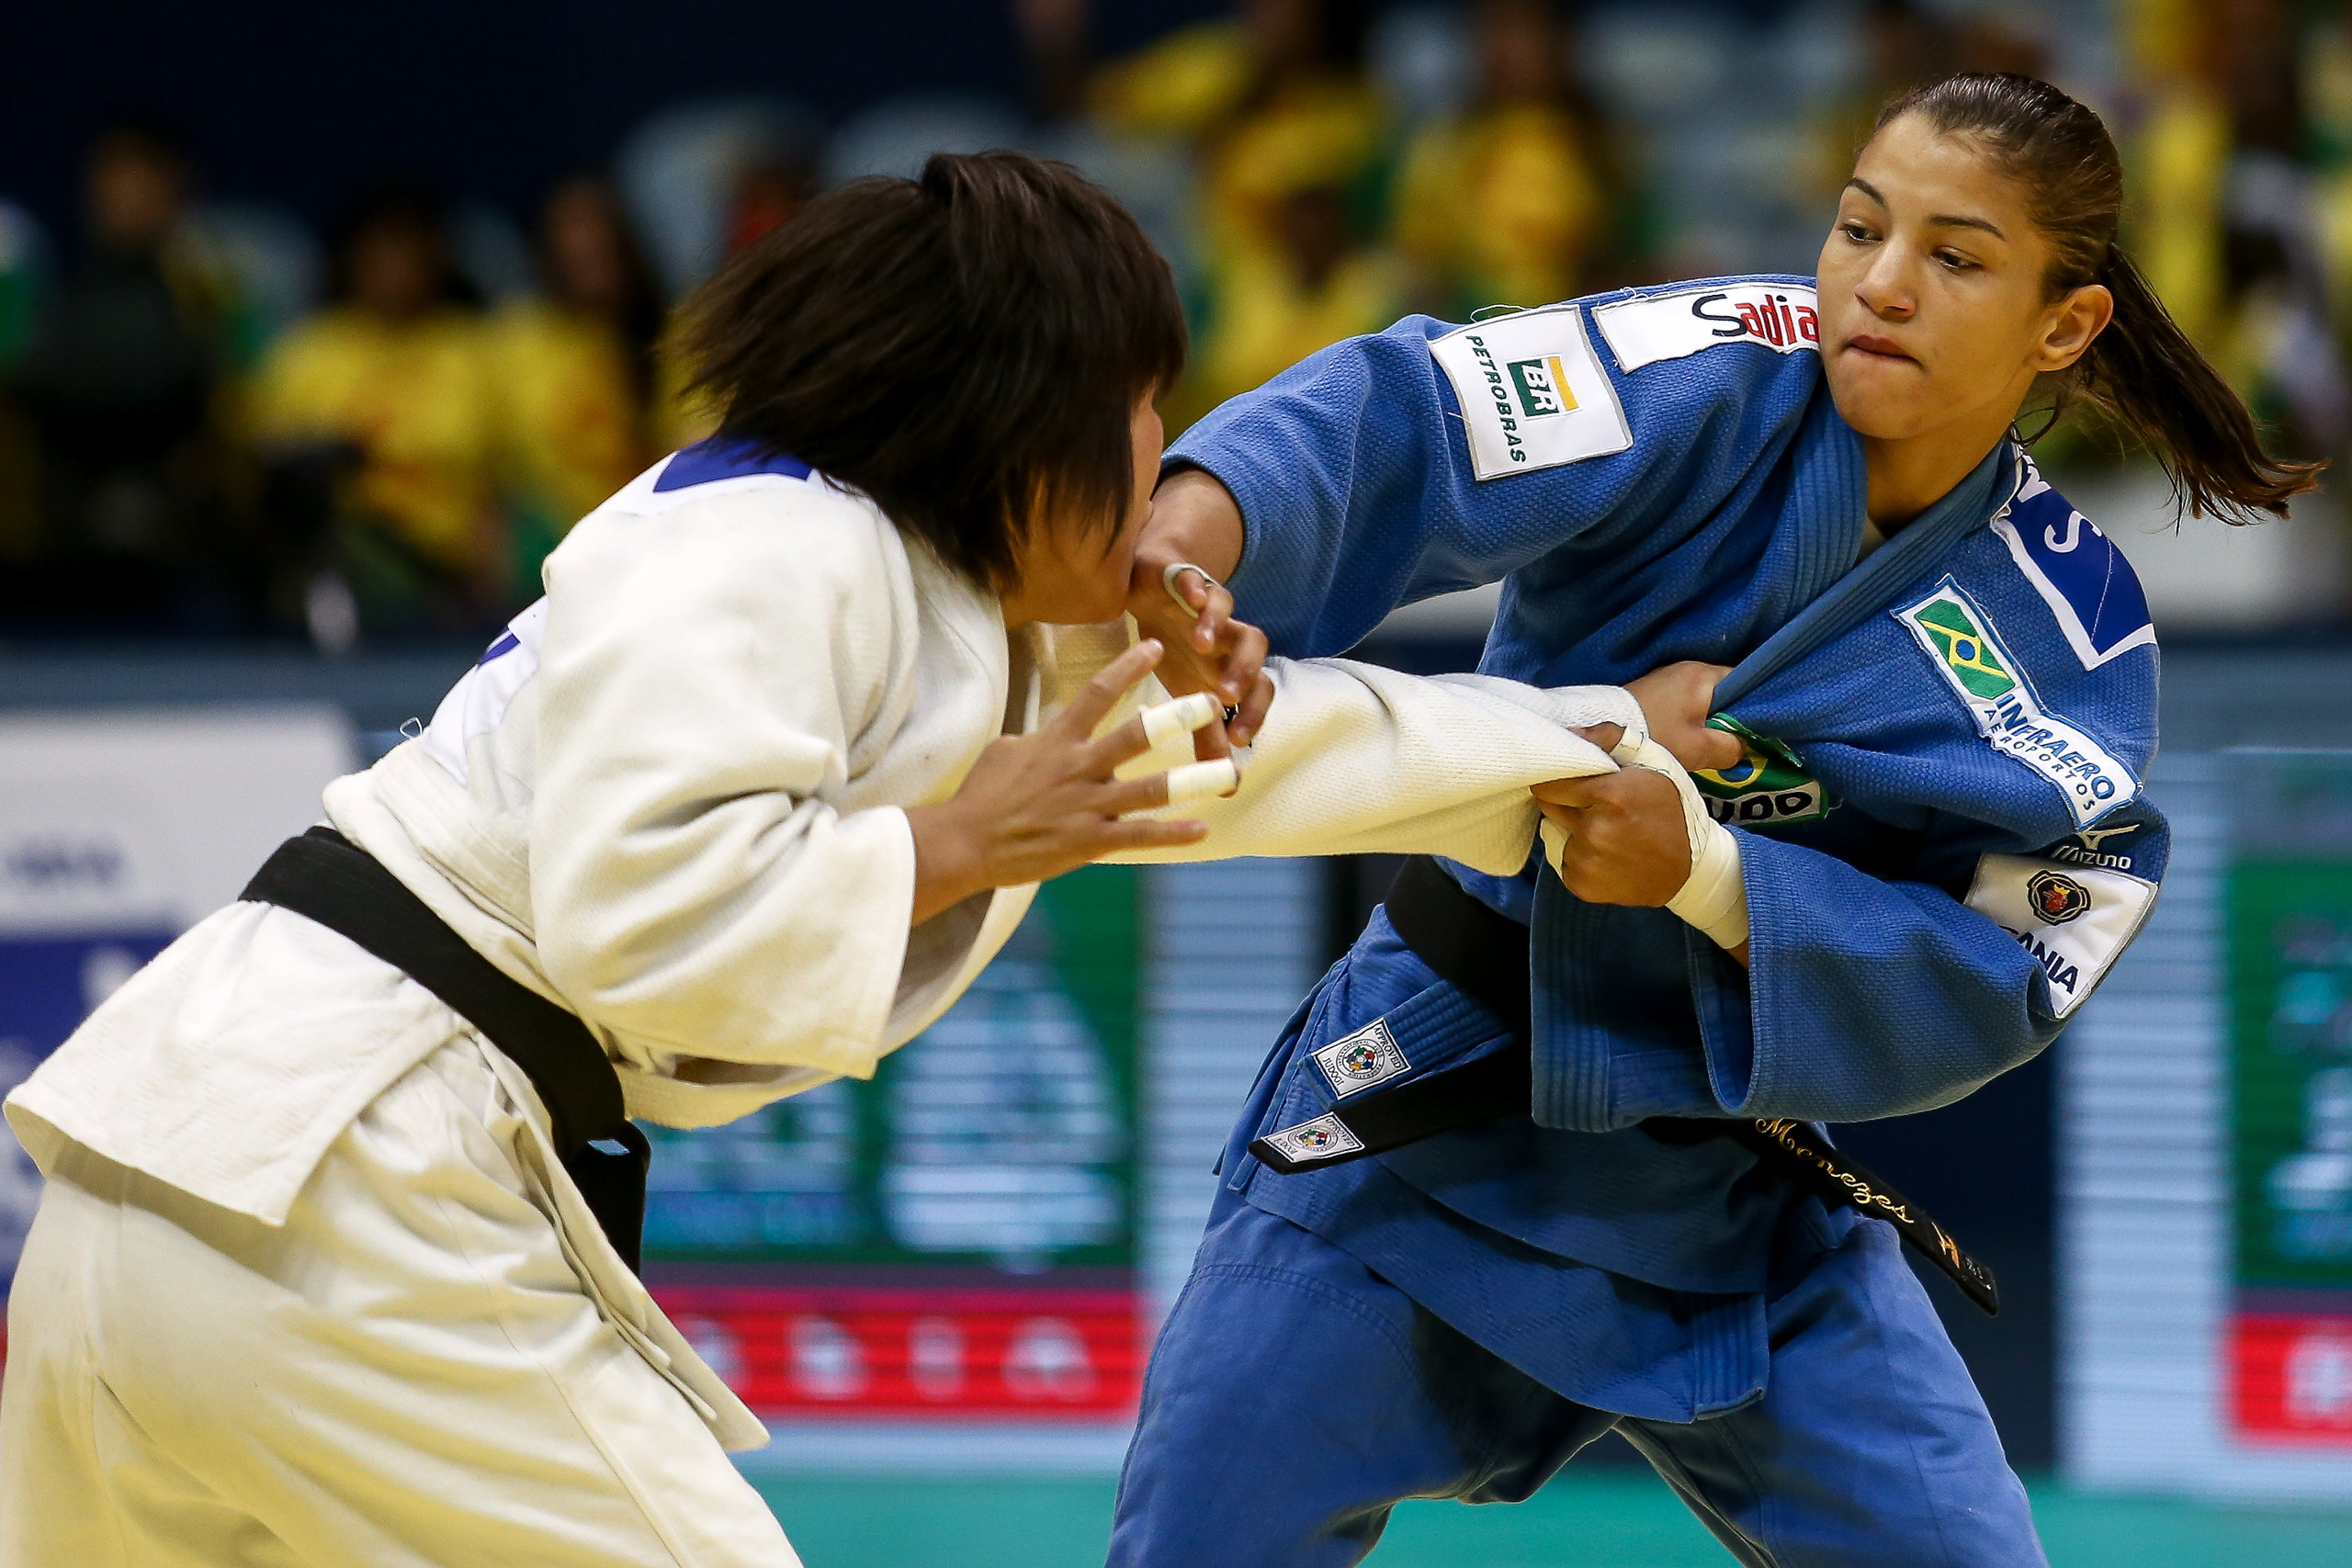 <strong>Sarah Menezes, Judo, Brazil</strong>A gold medalist in London, Menezes could win the home team's first gold in Rio, inspiring Saturday-night samba celebrations throughout Brazil.